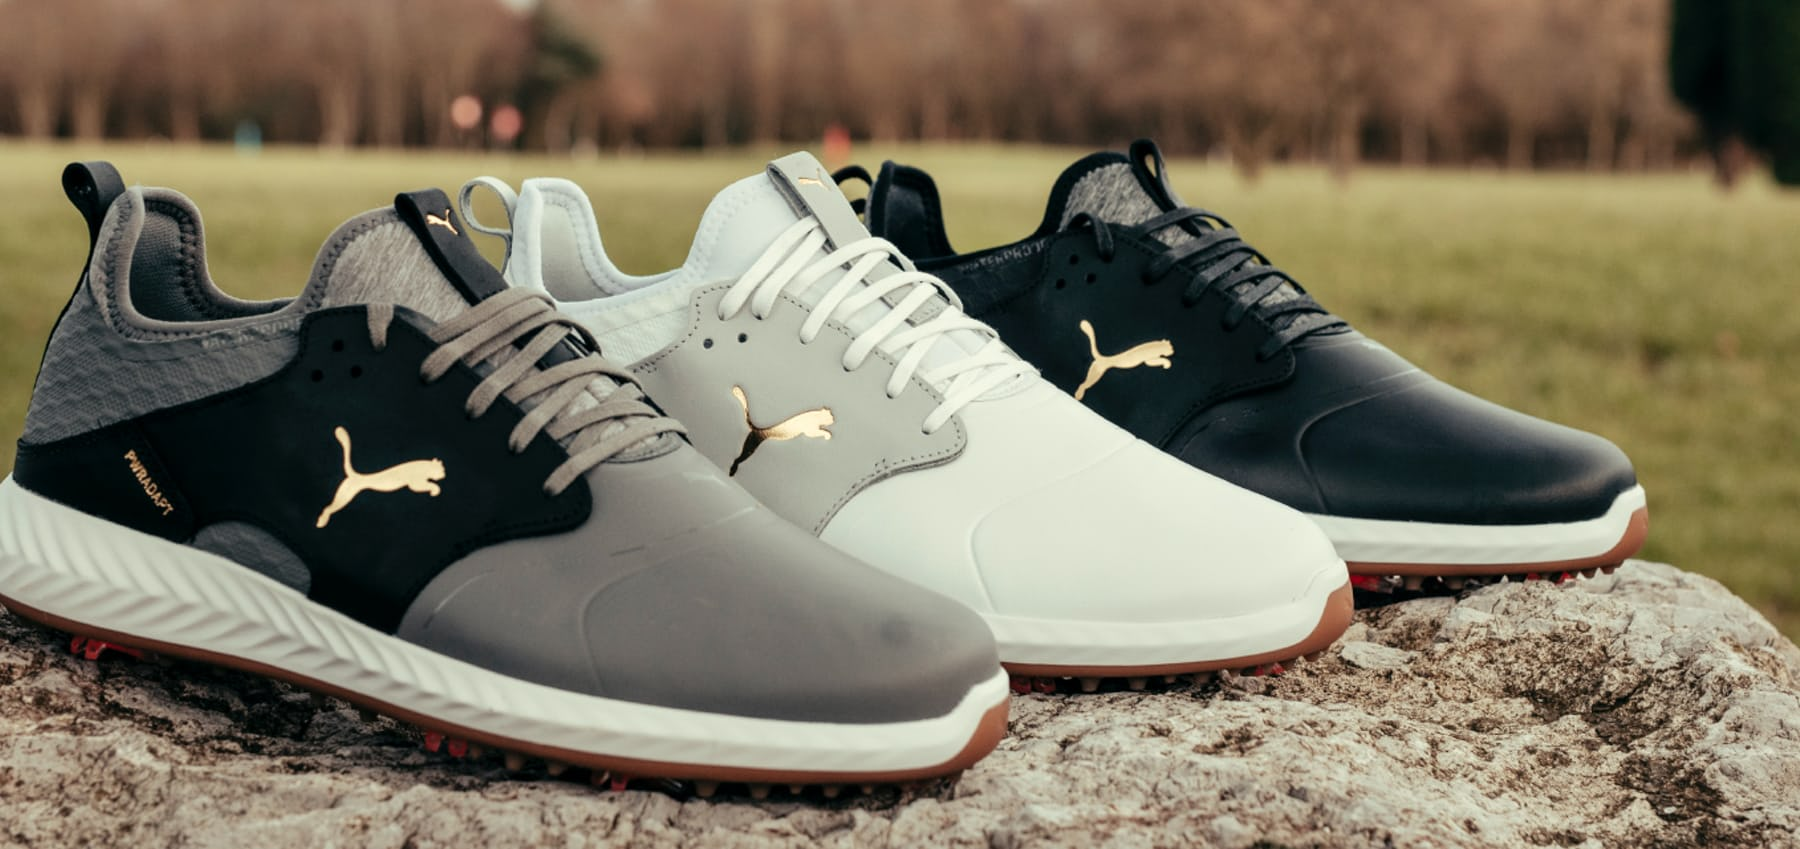 Puma IGNITE PWRADAPT Caged Crafted Shoes